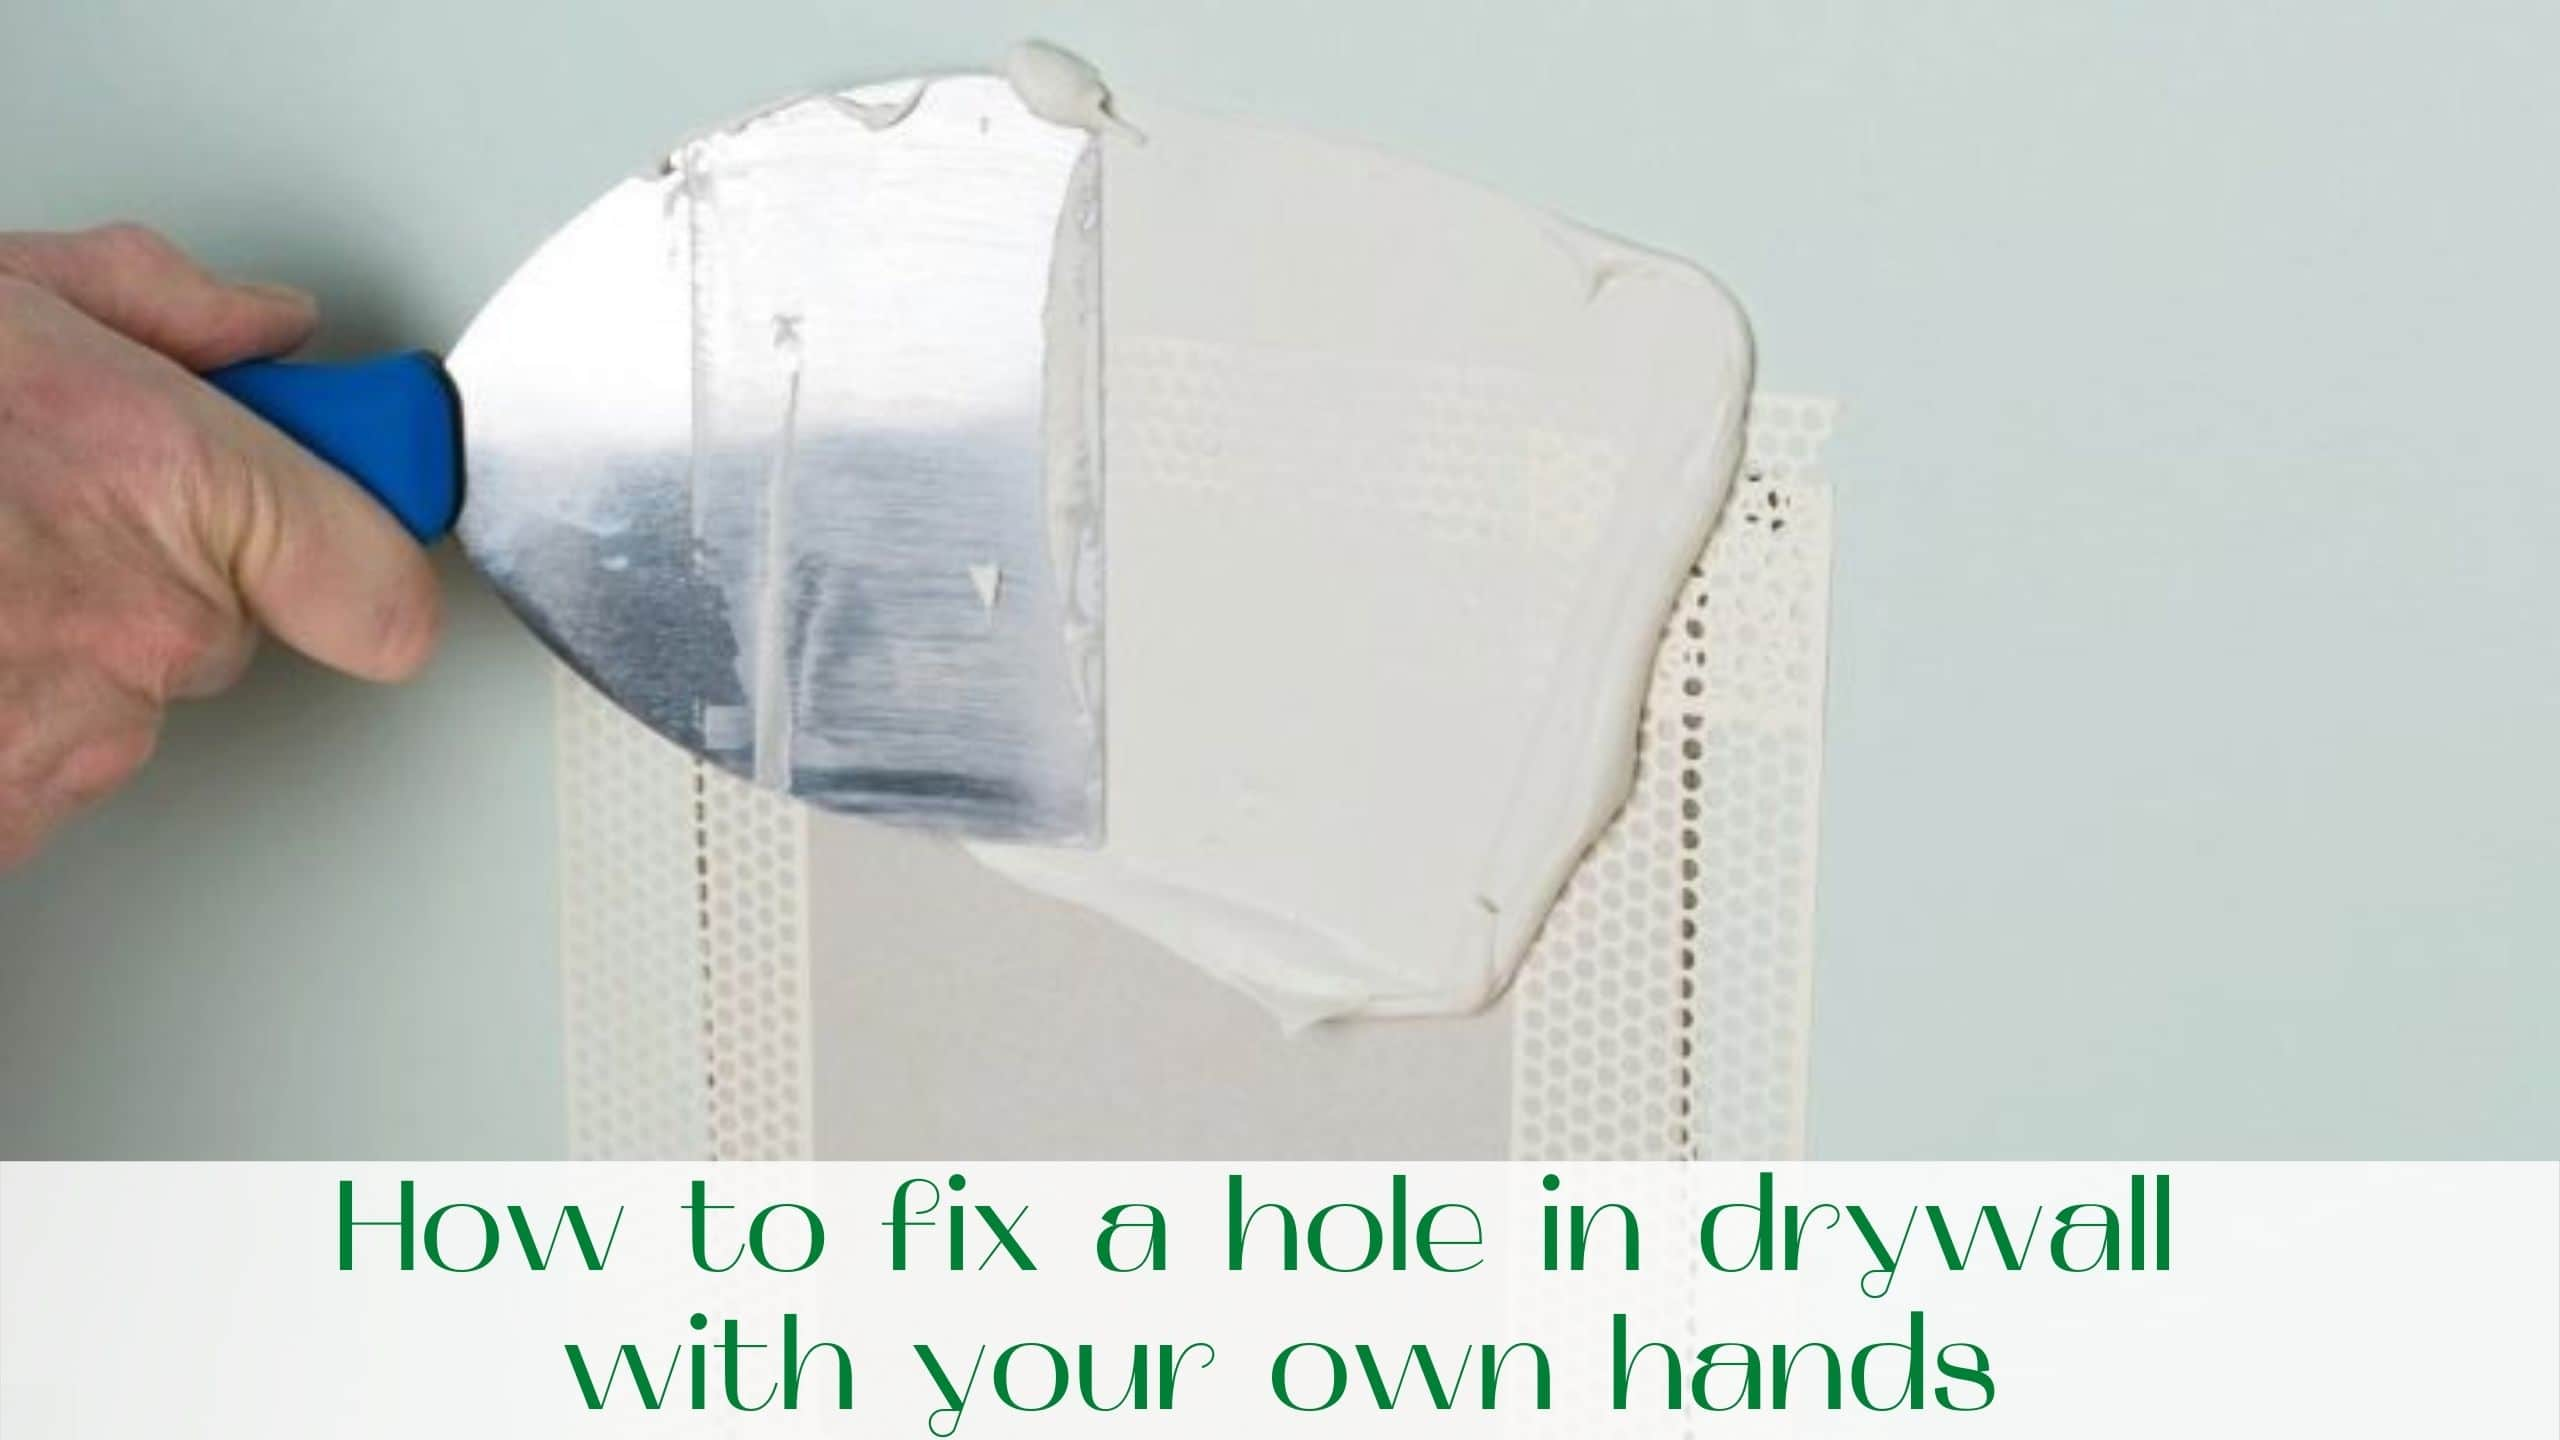 image-How-to-fix-a-hole-in-drywall-with-your-own-hands